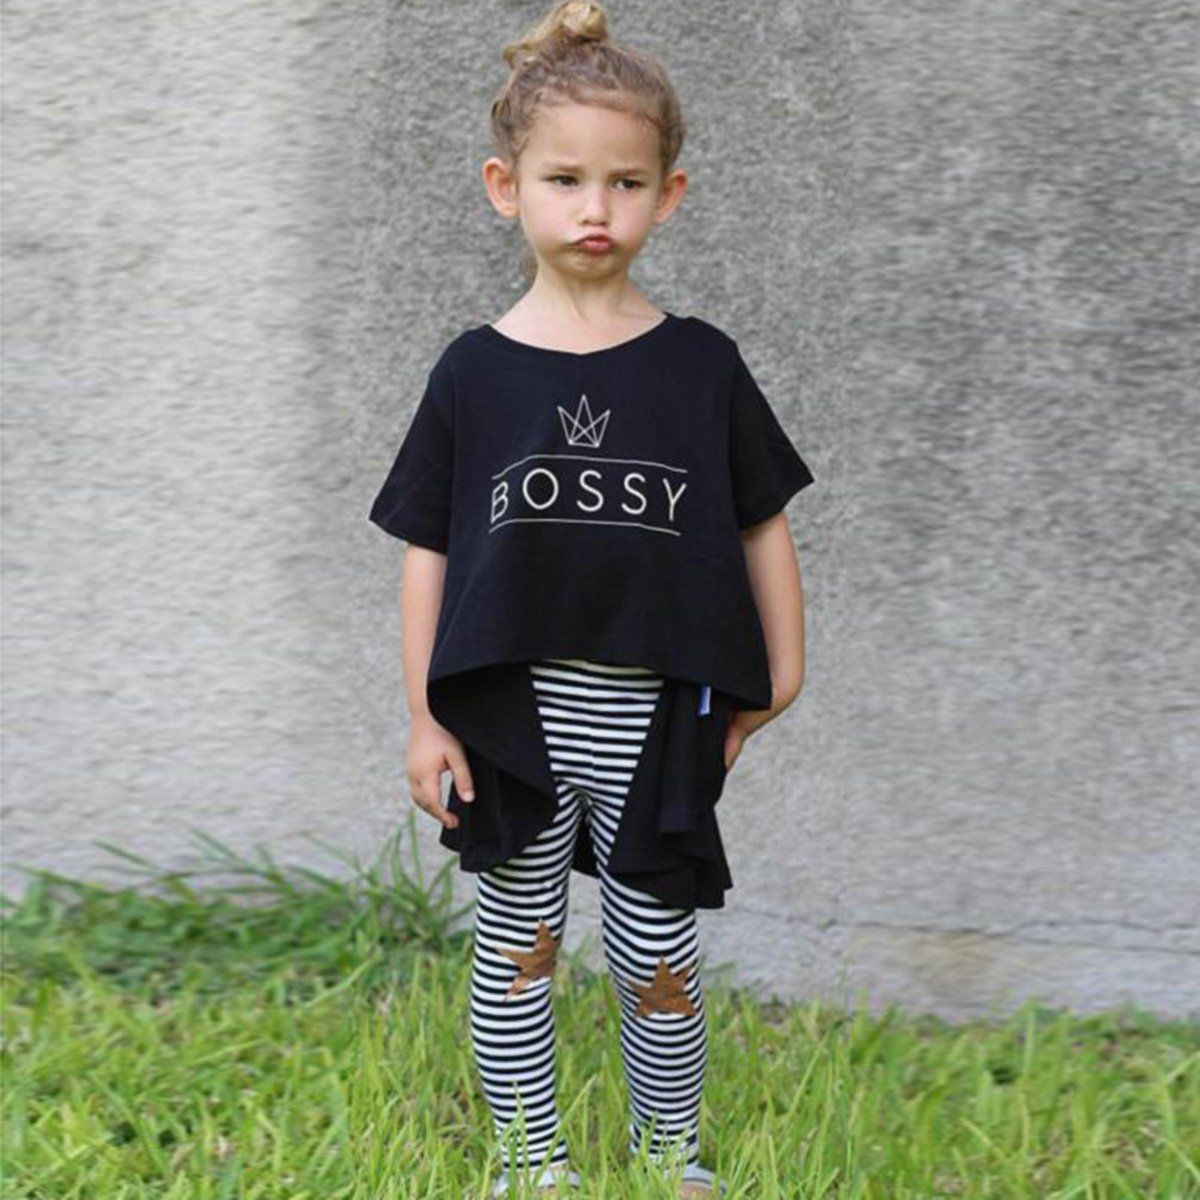 2PCS Toddler Kids Baby Girl Bossy Letter T Shirt Tops Pants Leggings Outfit Clothes Set Irregular Shirt Dress+Pants Clothes Set fluffy straight ponytail side bang heat resistant synthetic anti alice hair cosplay wig